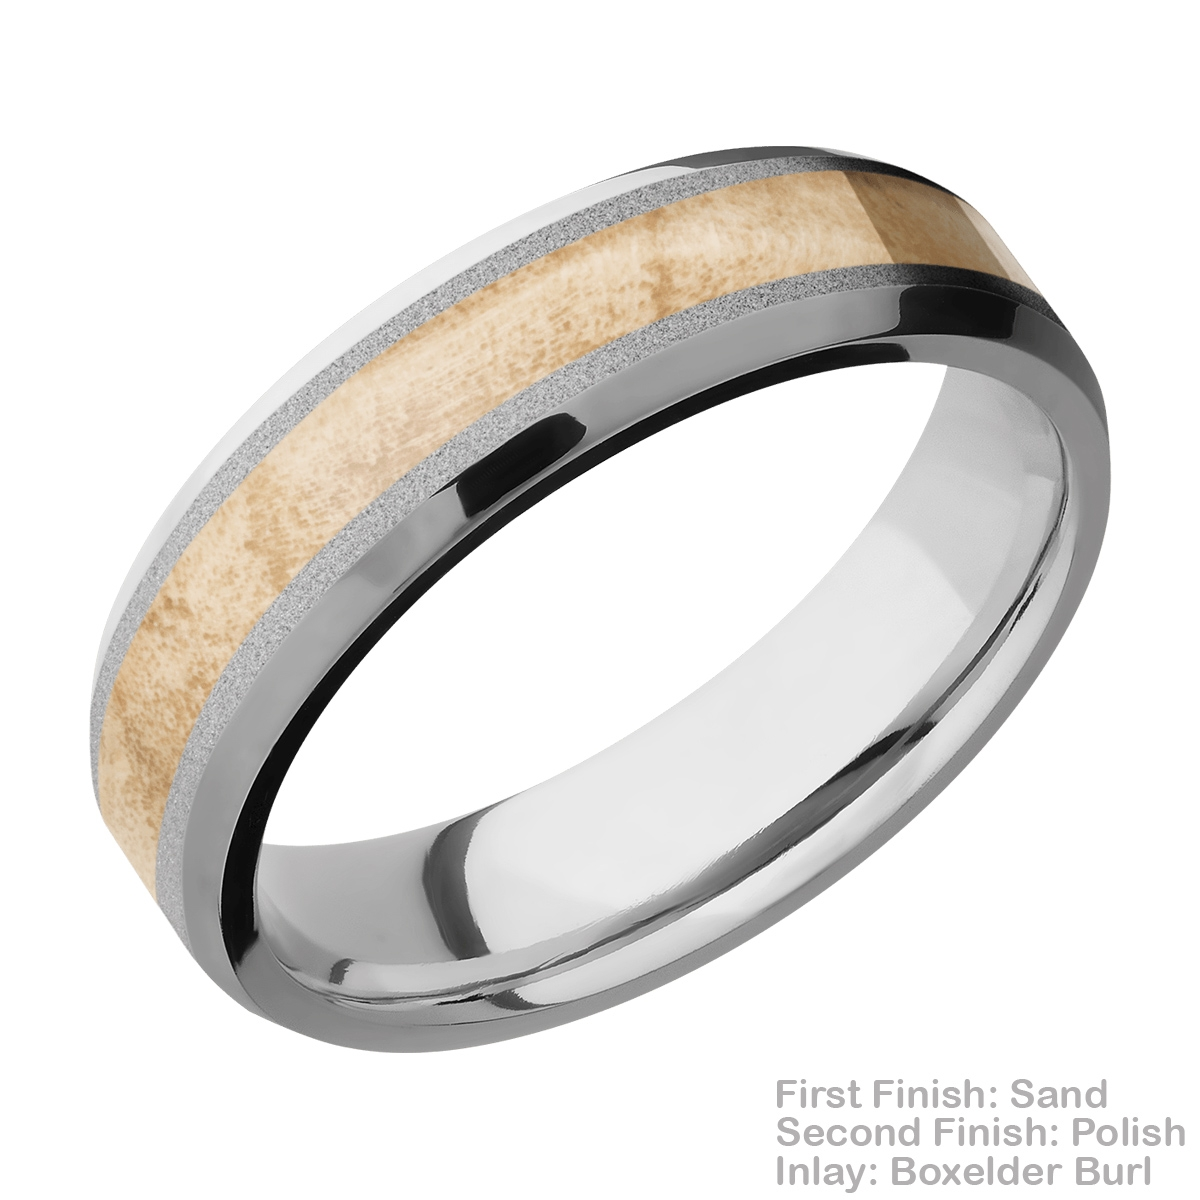 Lashbrook CC6B13(NS)/HARDWOOD Cobalt Chrome Wedding Ring or Band Alternative View 6